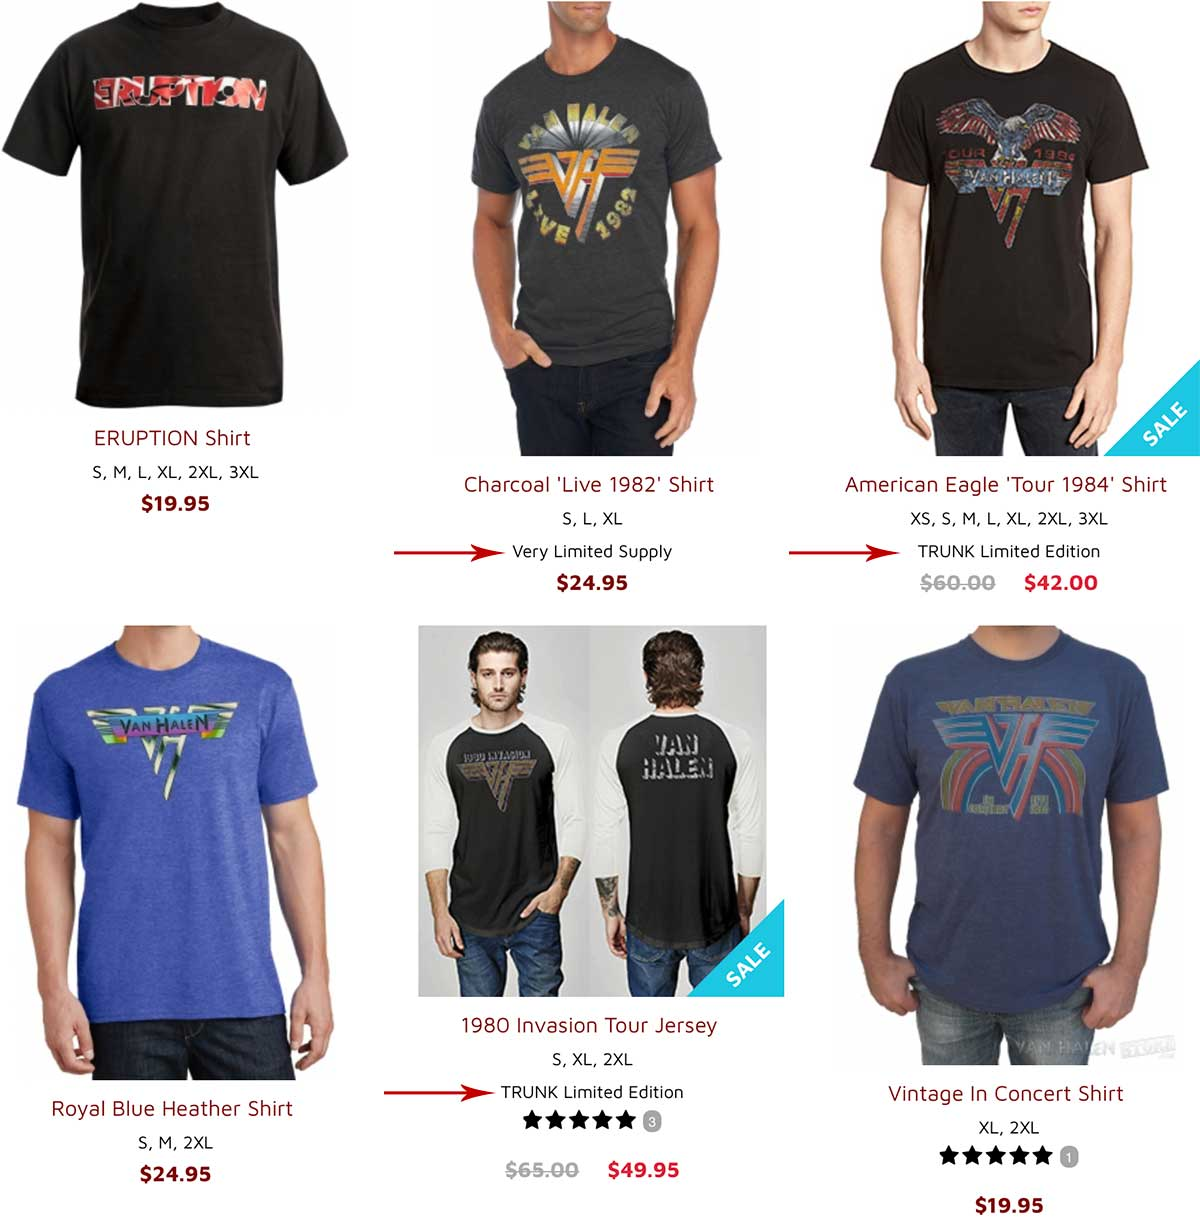 Category page of t-shirts. Under some are words telling shoppers available sizes, limited inventory and exclusives.